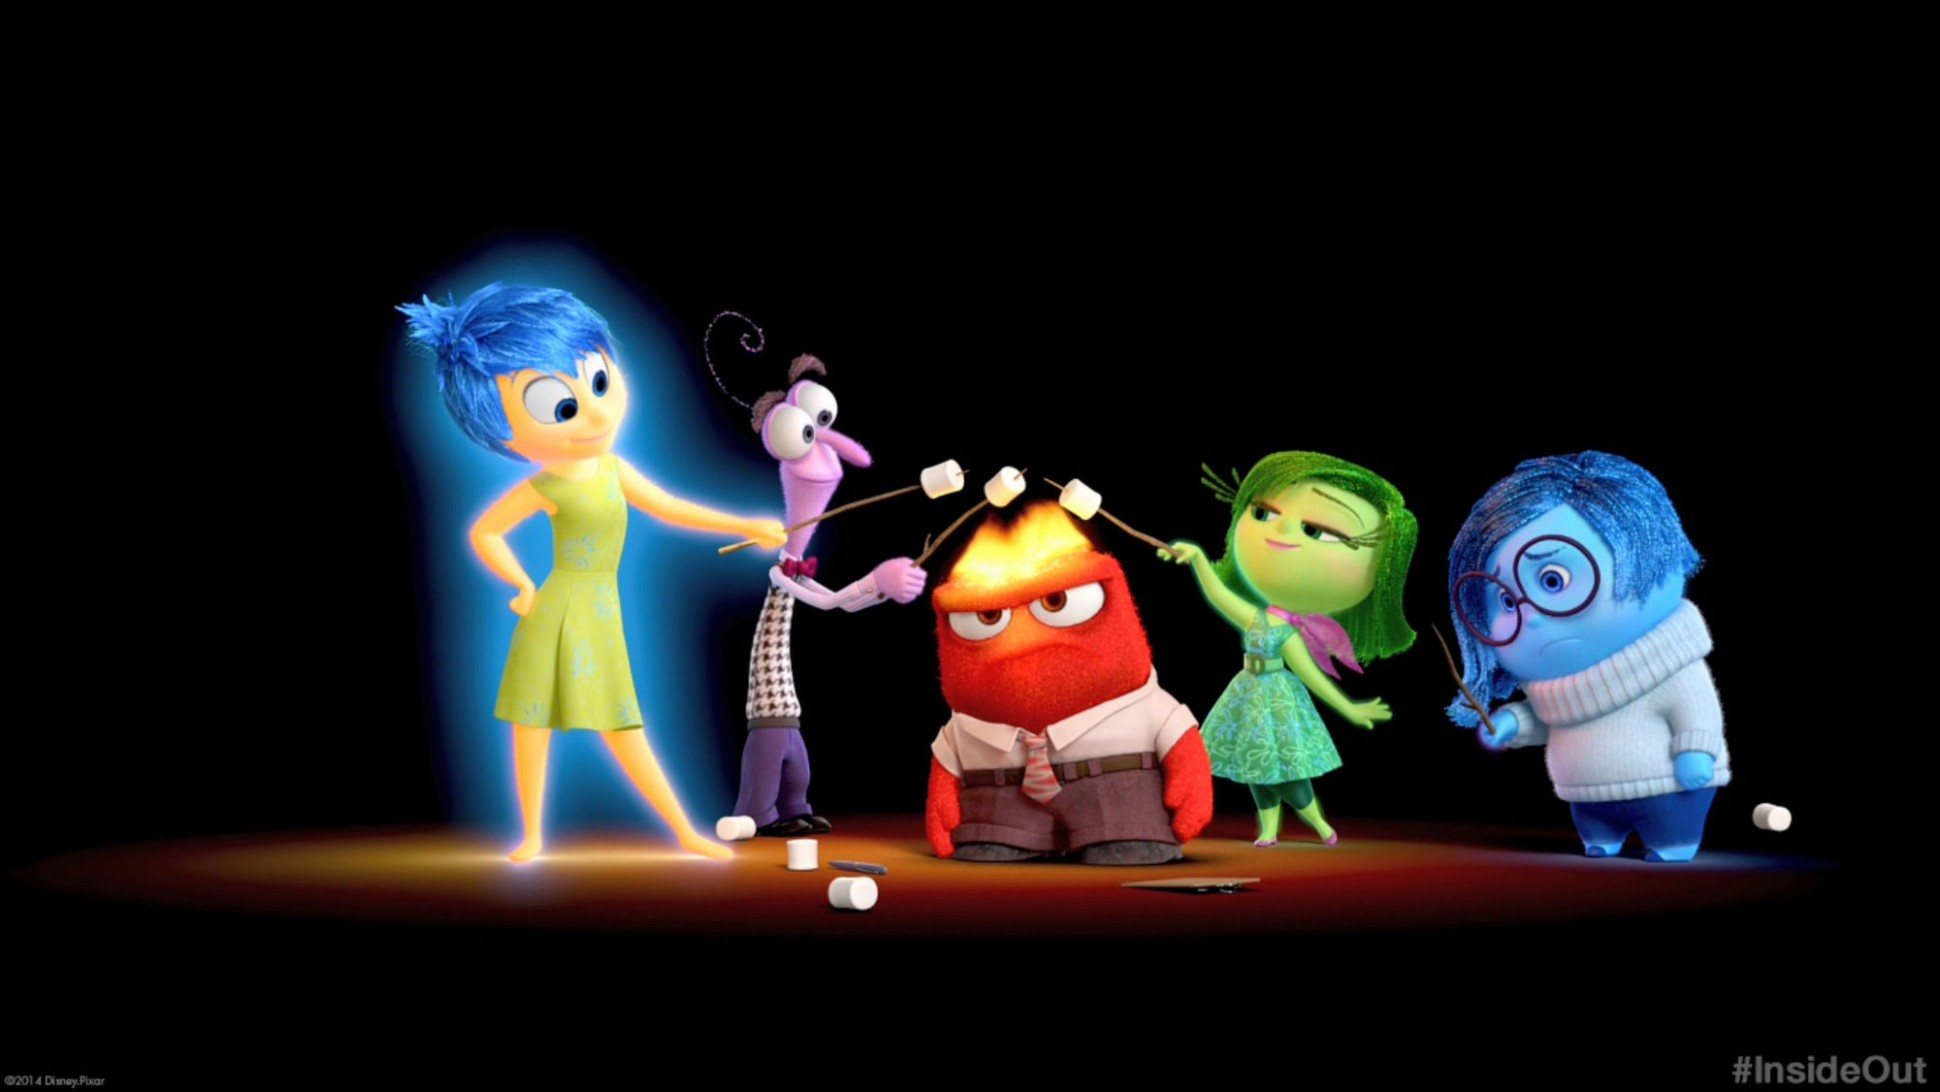 Disney/Pixar||http://www.forbes.com/sites/markhughes/2015/06/17/review-inside-out-is-pixar-perfection/